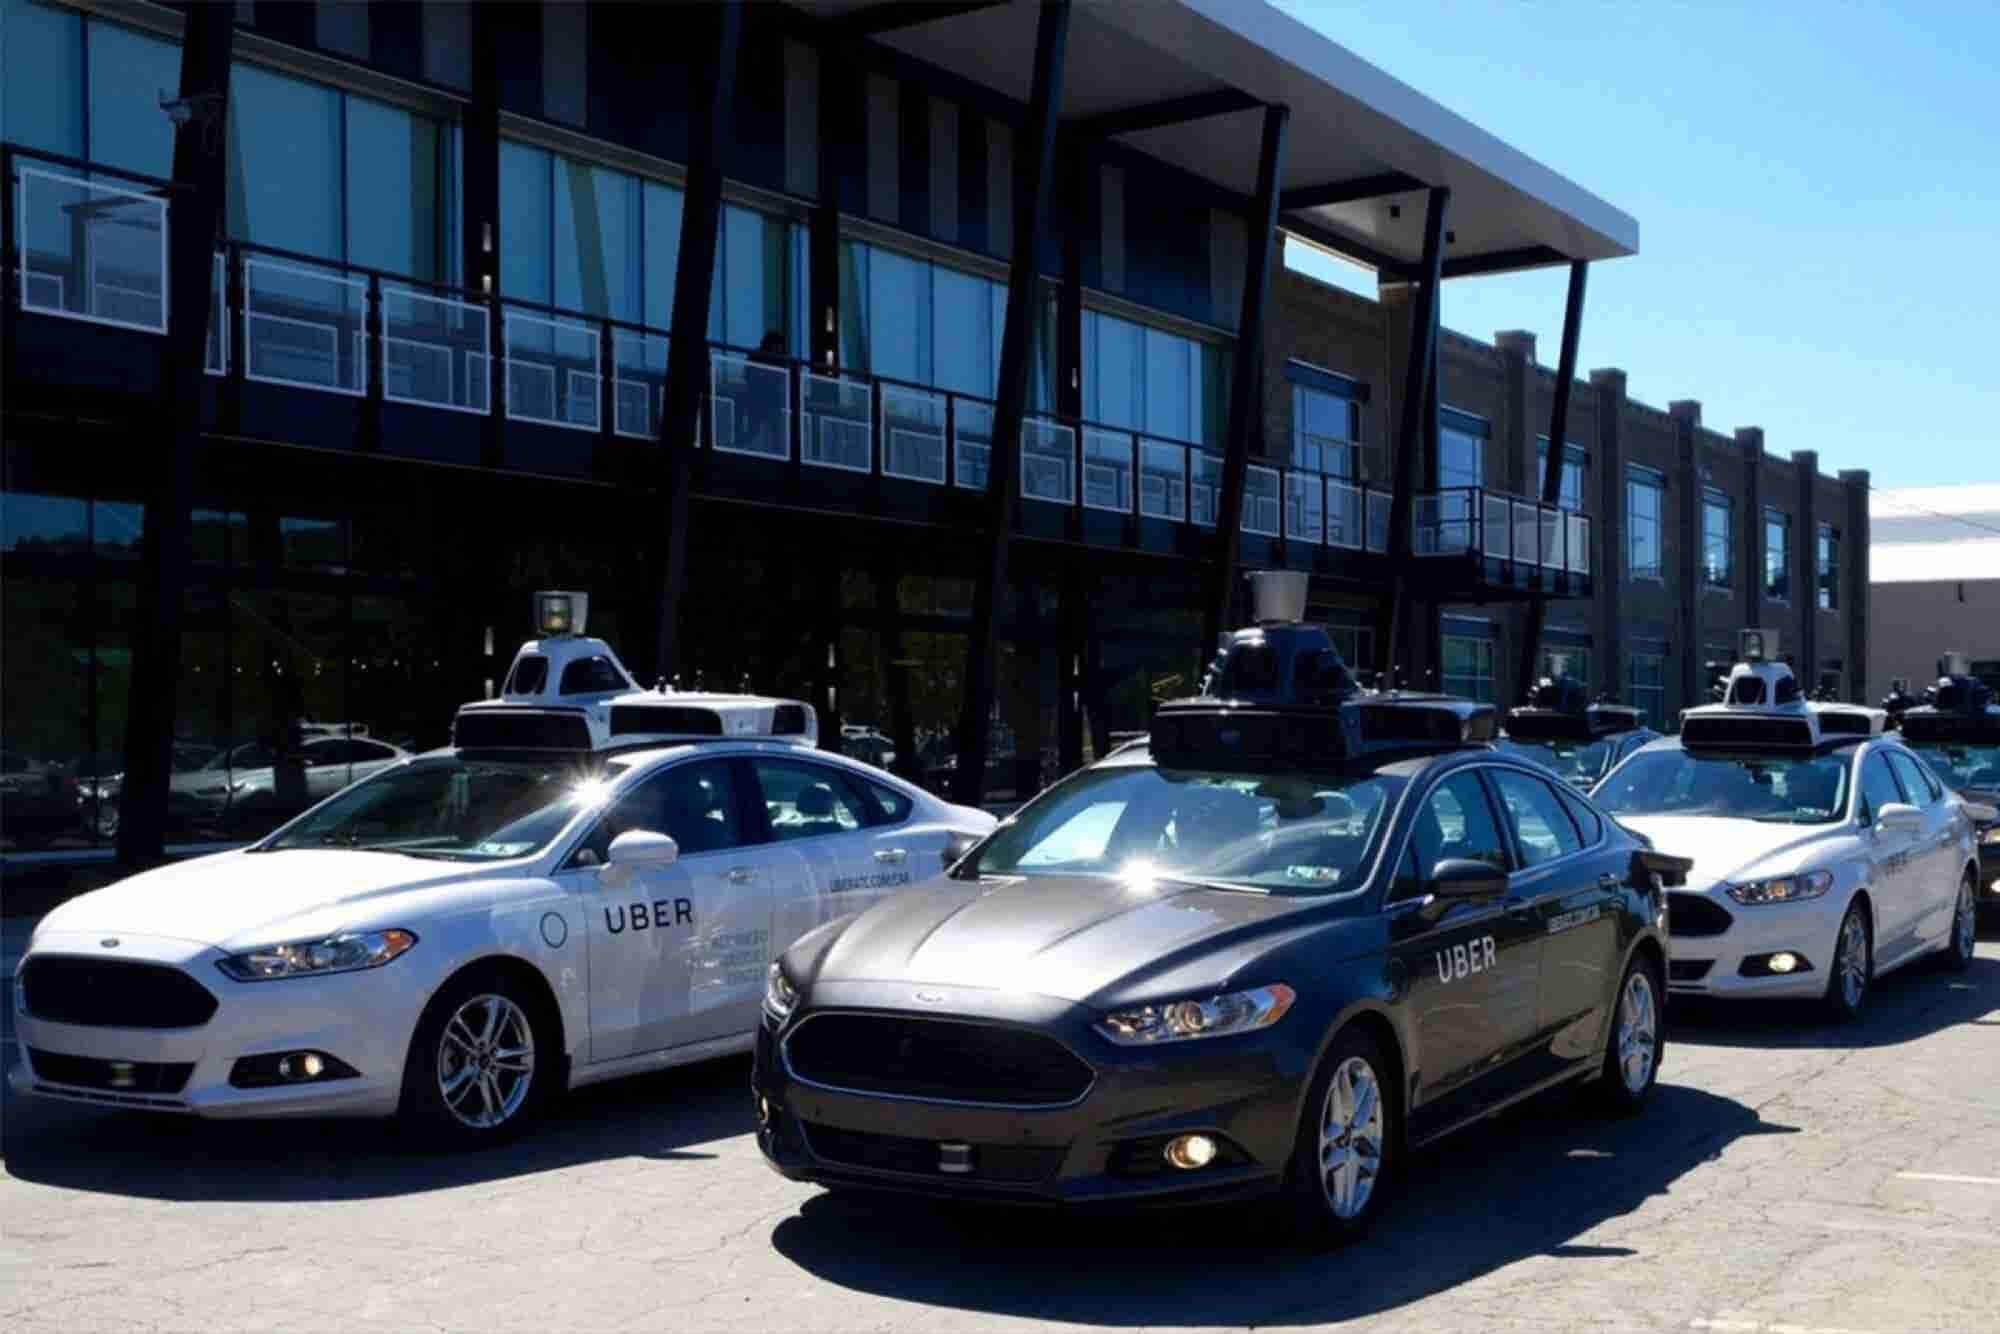 I Drove Around Pittsburgh in a Self-Driving Uber